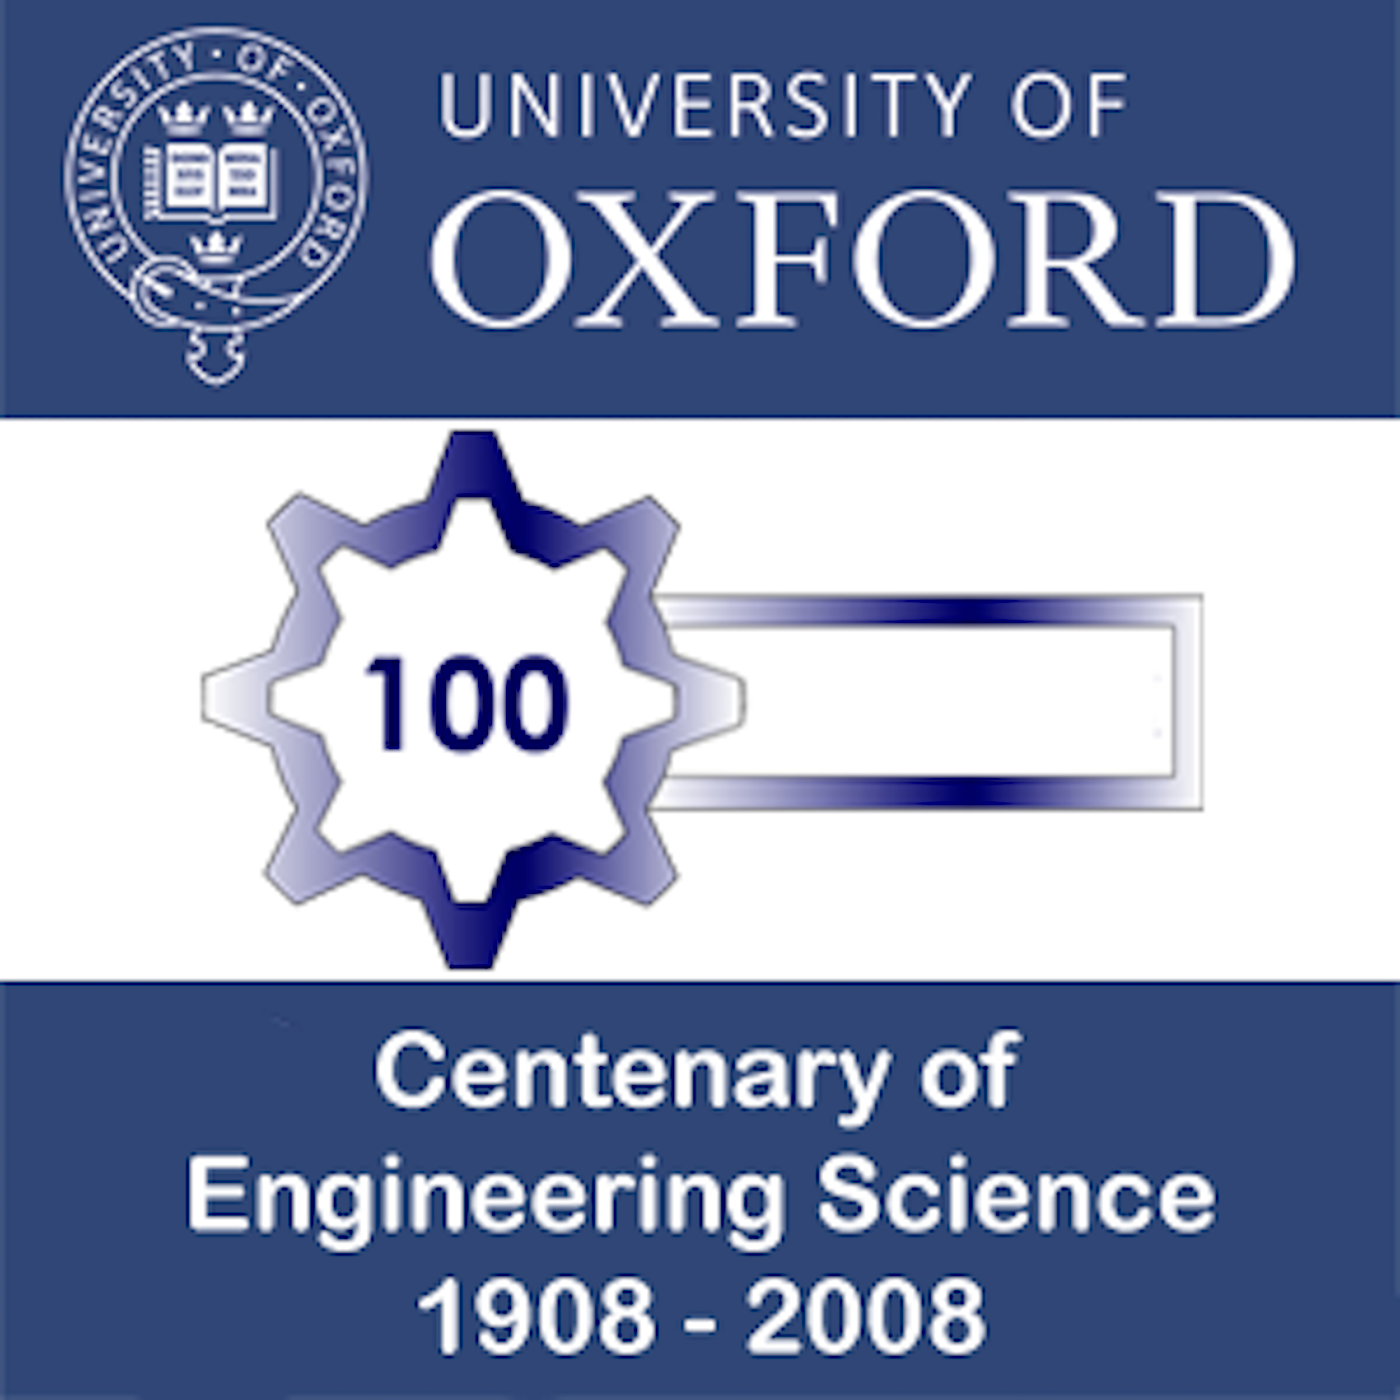 Lecture 10: Advances in Biomedical Engineering